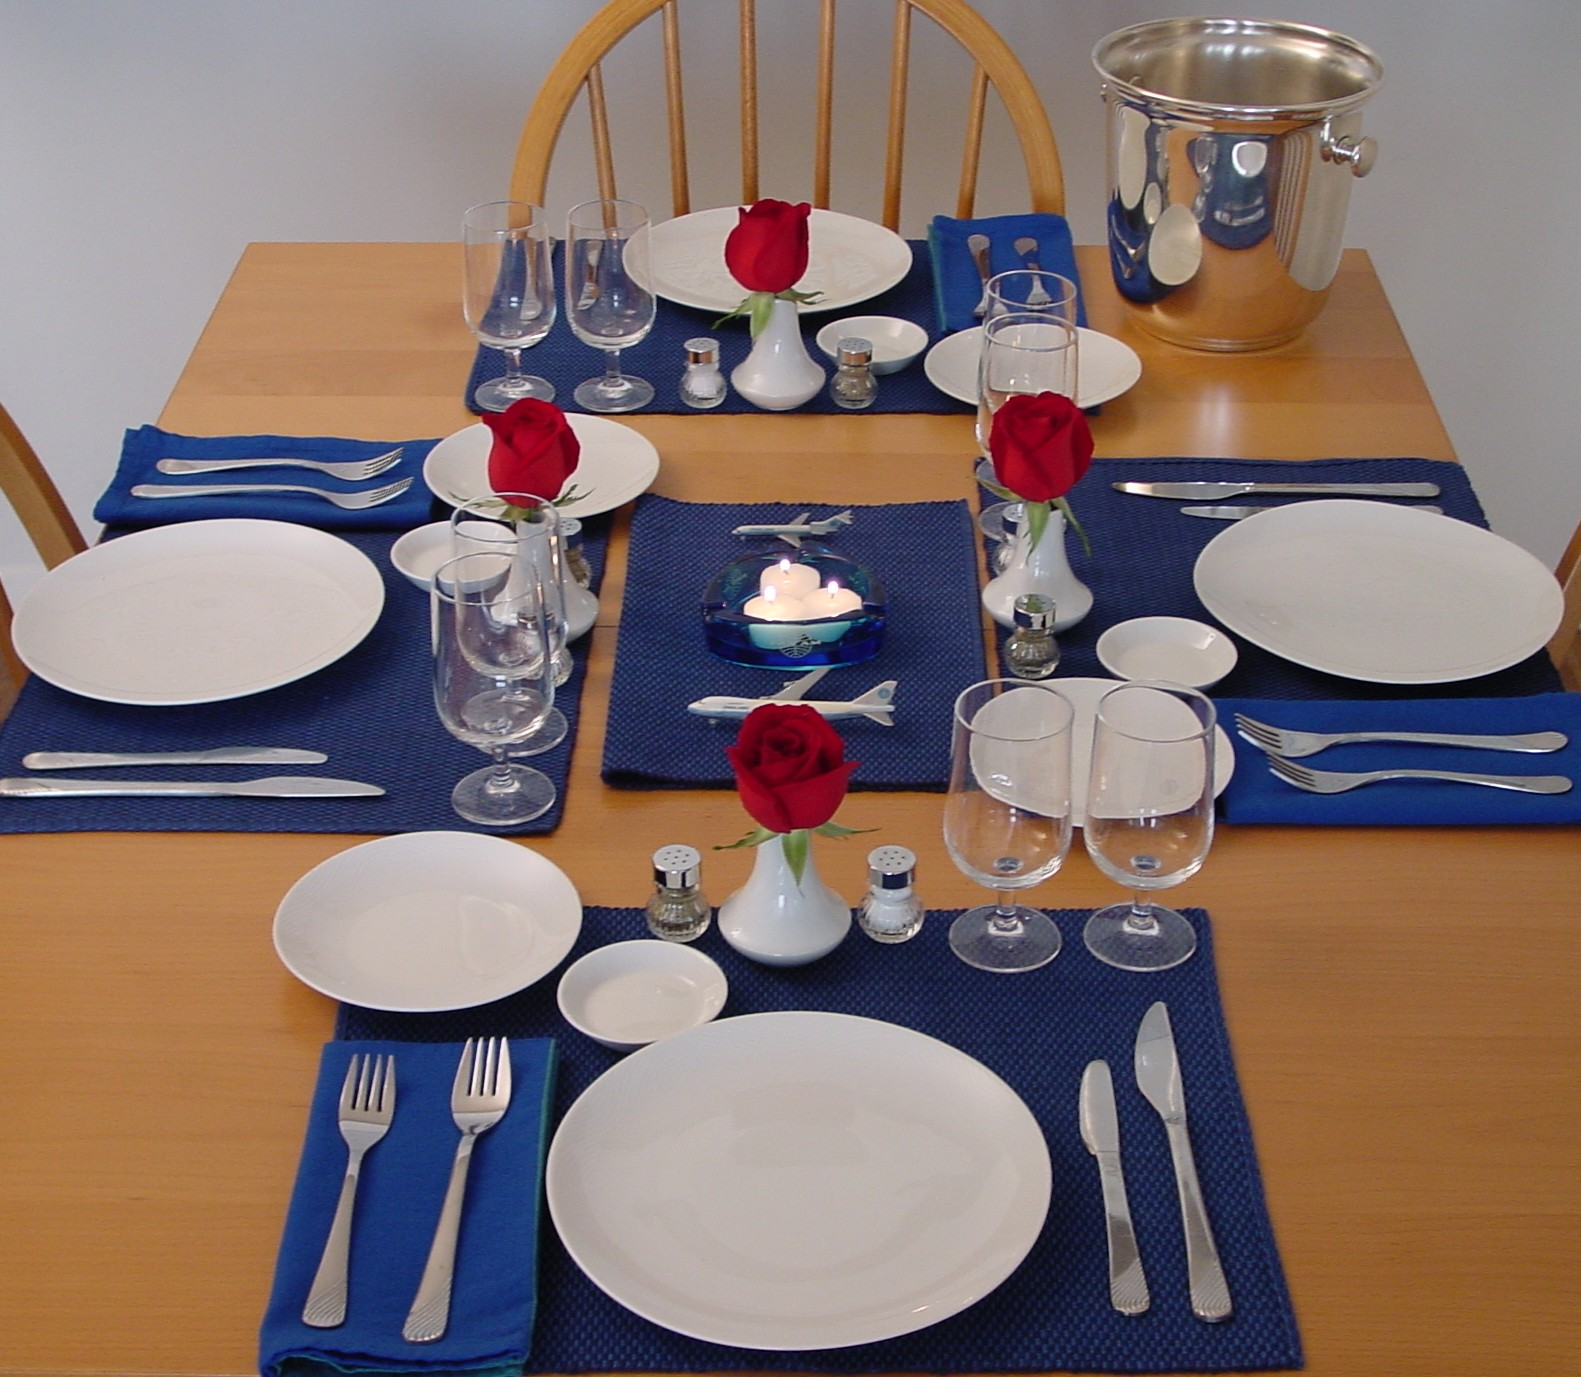 Pan am dinner table Simple table setting for lunch